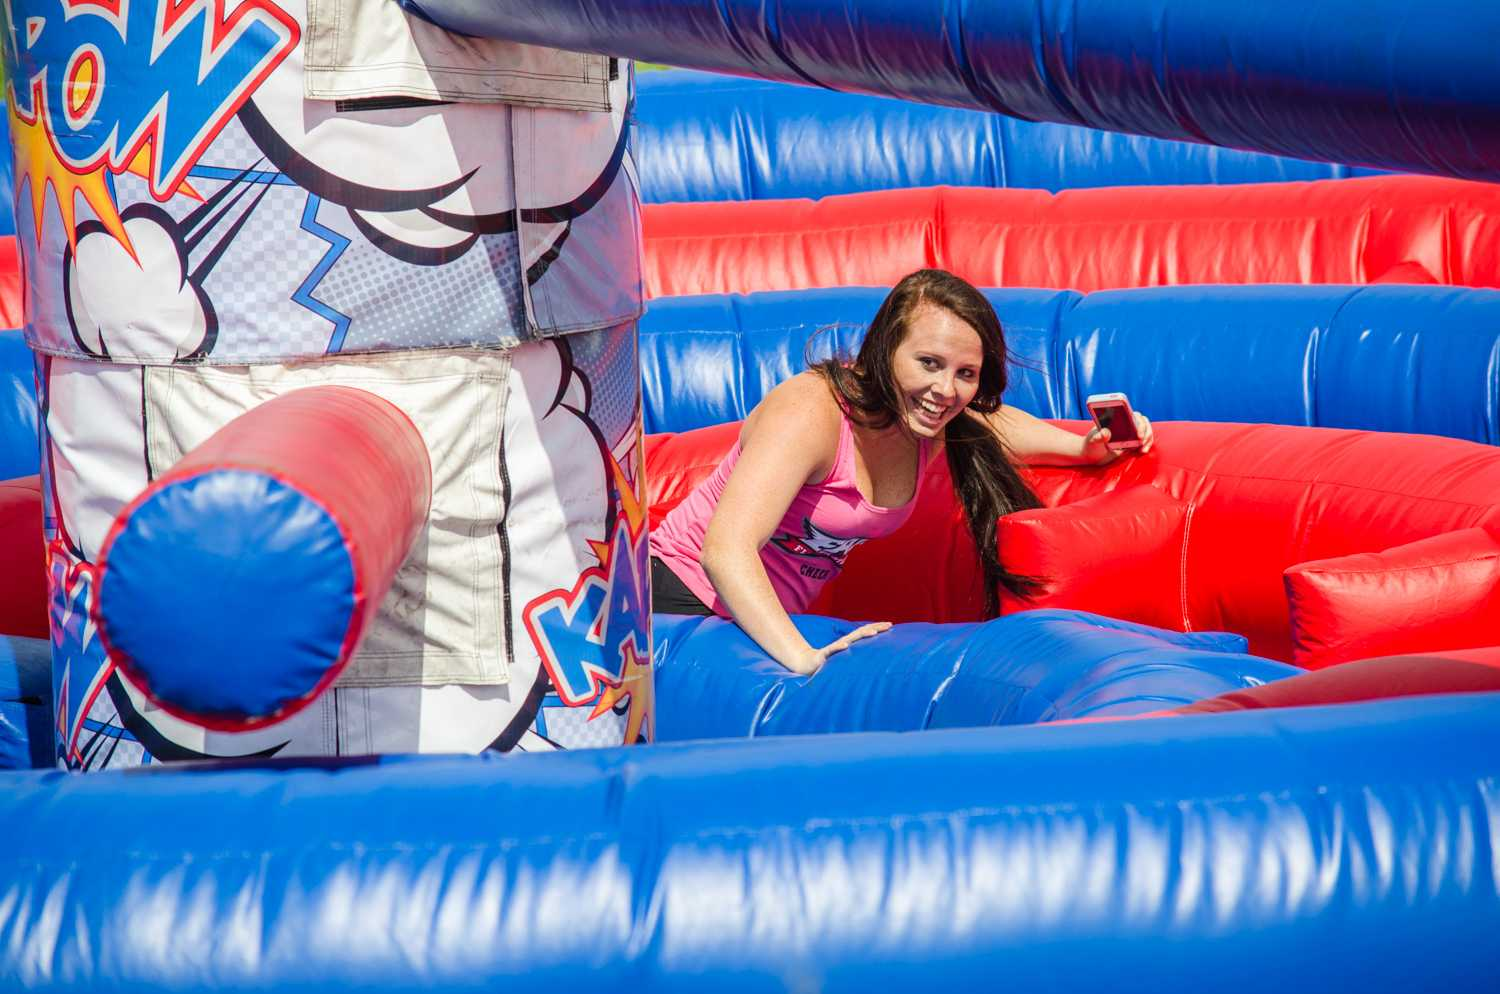 An FAU student enjoys the moving obstacle course at the Israel Independence Day Carnival, hosted by multiple groups including Owls for Israel, Hillel, ZOA, ICC, Camera, Hasbara, Stand With Us, and Student Government's Multicultural  Programing.